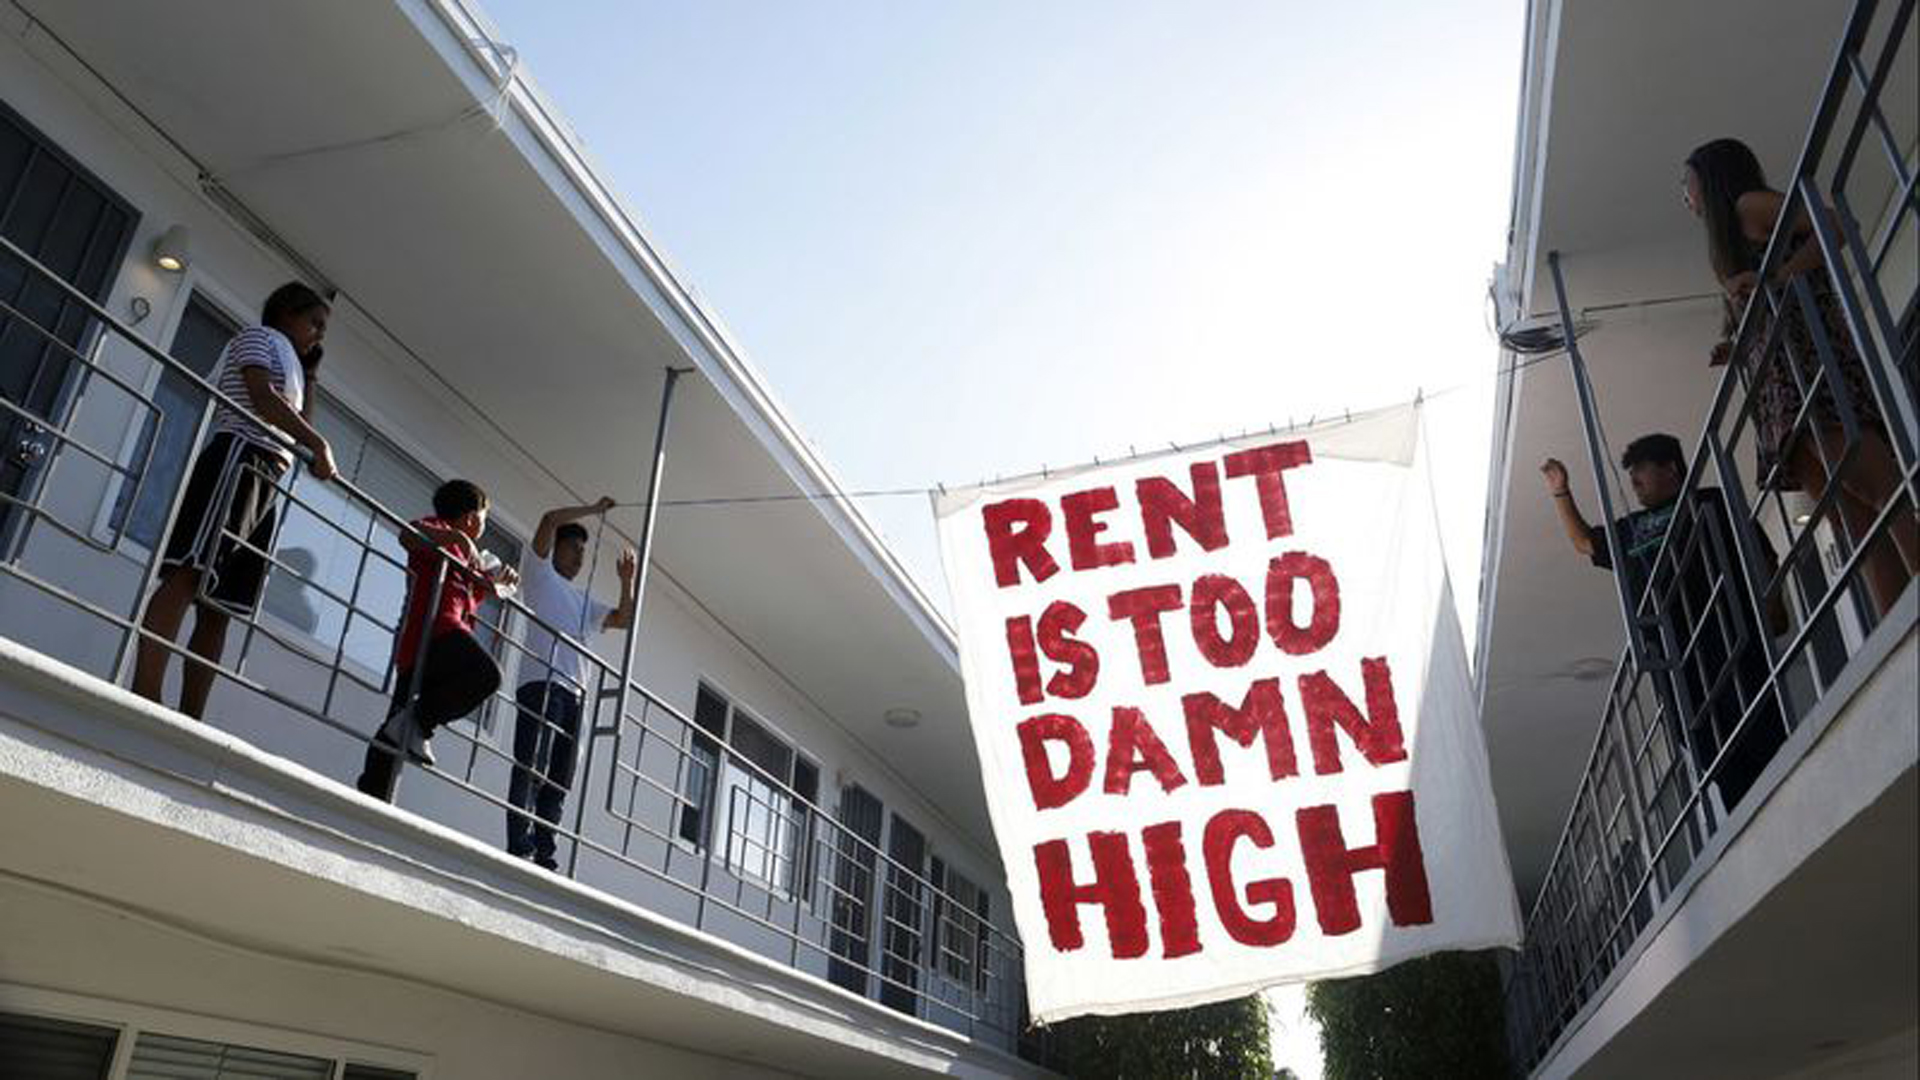 Organizers with Housing Long Beach, a local advocacy group, hang up a sign in the courtyard of an apartment complex on Cedar Avenue in Long Beach. (Credit: Katie Falkenberg / Los Angeles Times)